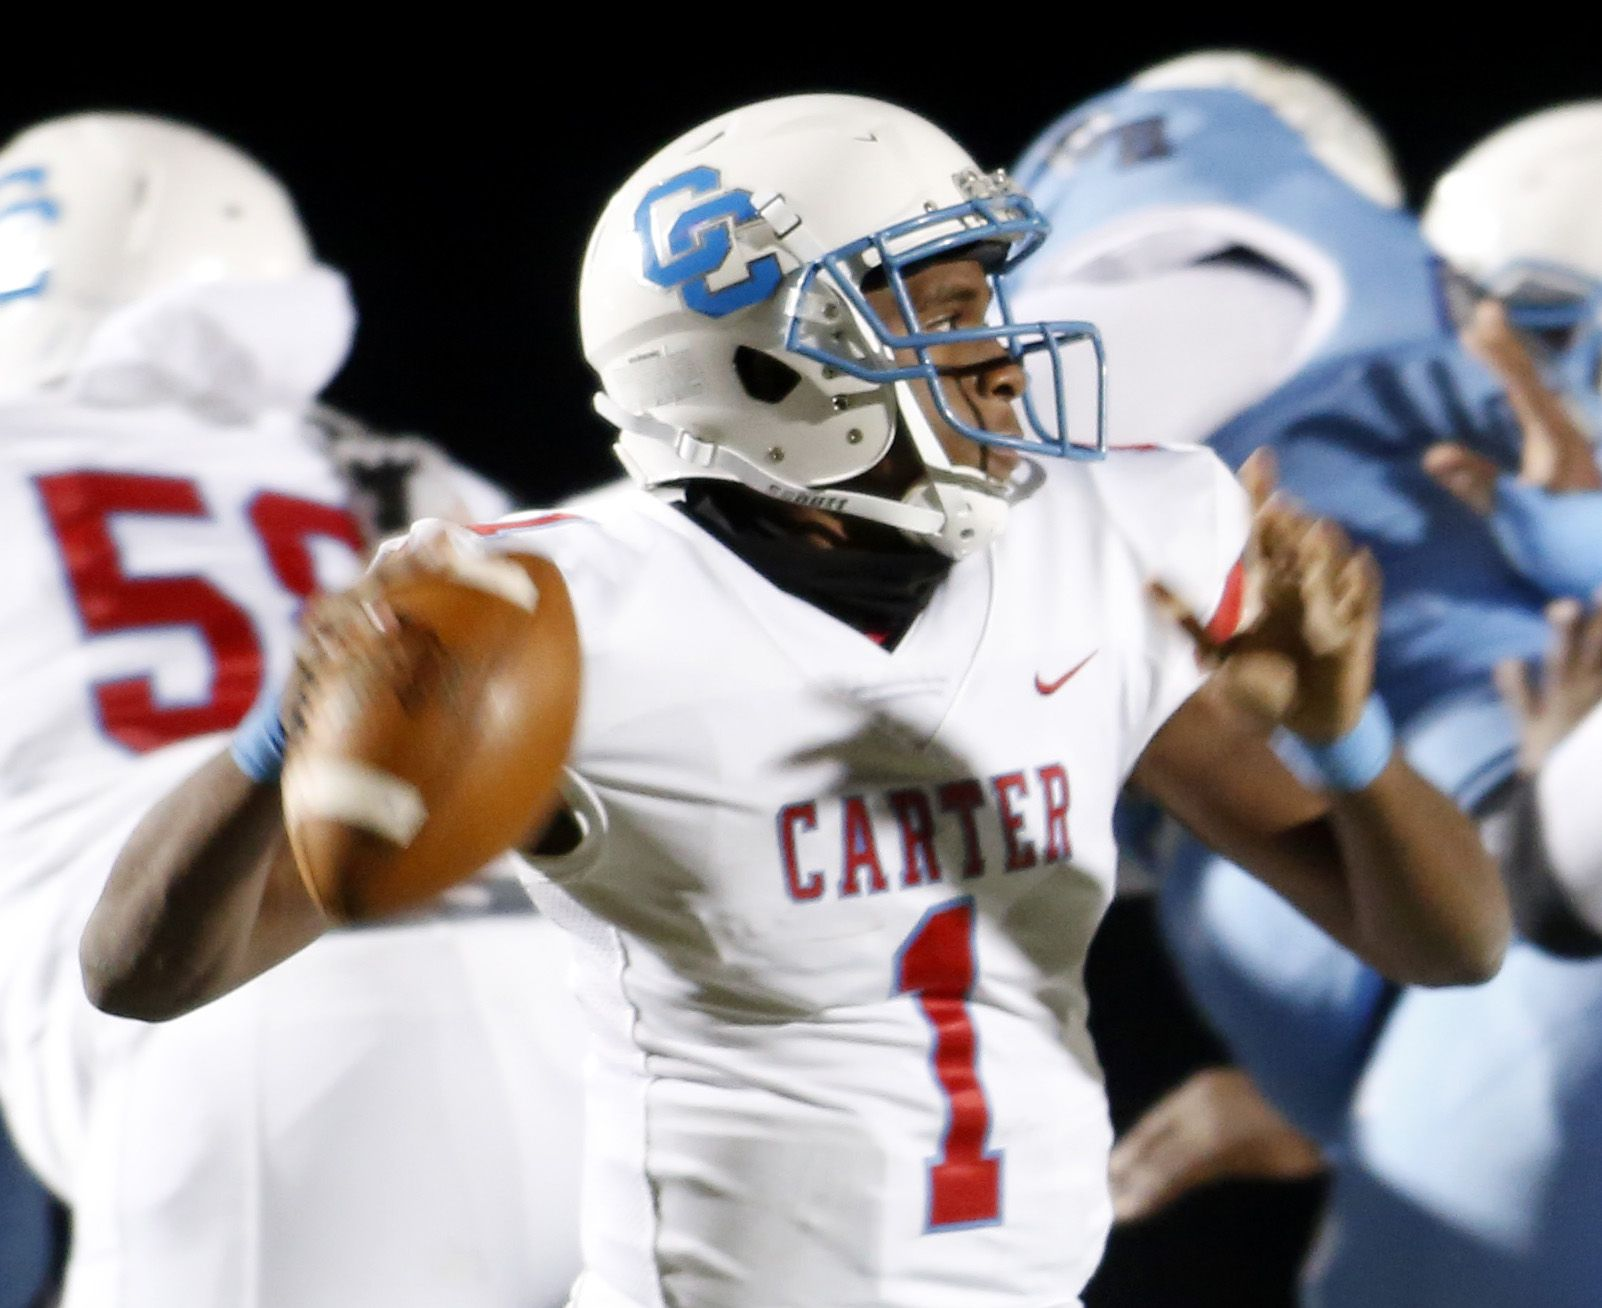 Dallas Carter quarterback Kace Williams (1) prepares to deliver a pass from the pocket during first quarter action against Wilmer Hutchins.  The two teams played their District 8-4A Division 1 football game at Wilmer Hutchins High School Stadium in Dallas on October 23, 2020. (Steve Hamm/ Special Contributor)